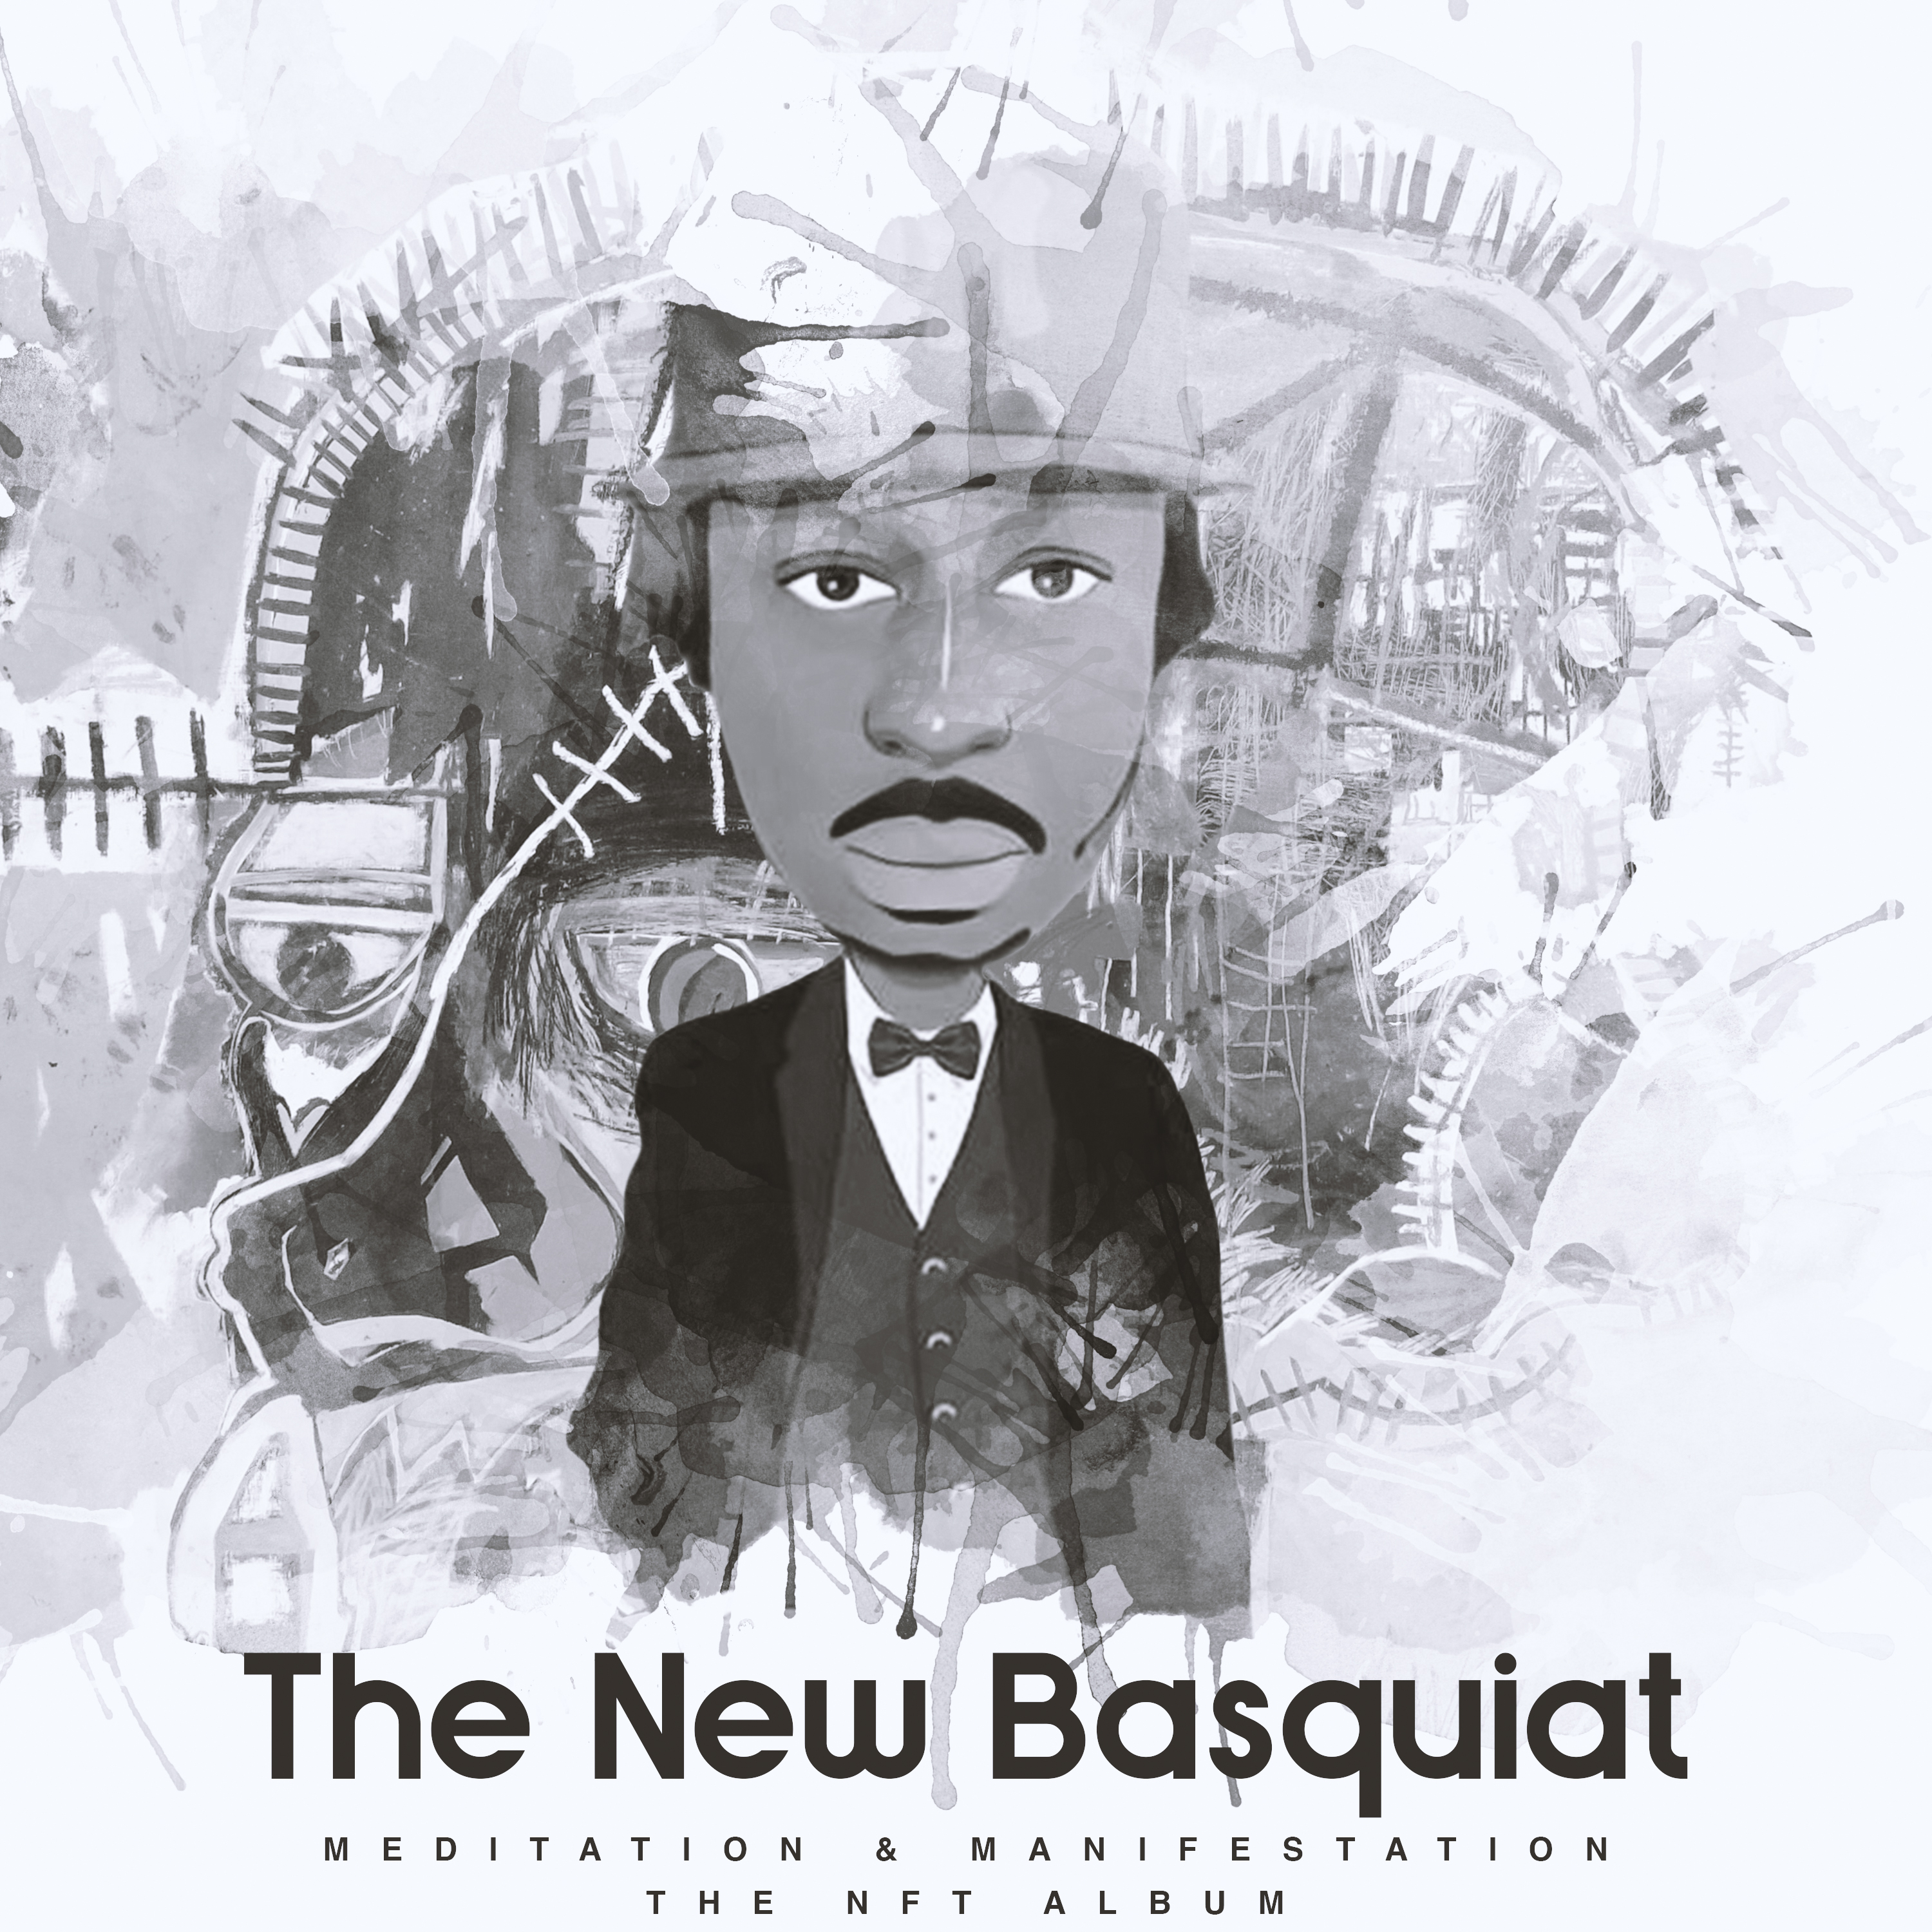 """The New Basquiat Announces New Album """"Meditation & Manifestation"""" Astral Projection NFT Album to Fight Anxiety"""